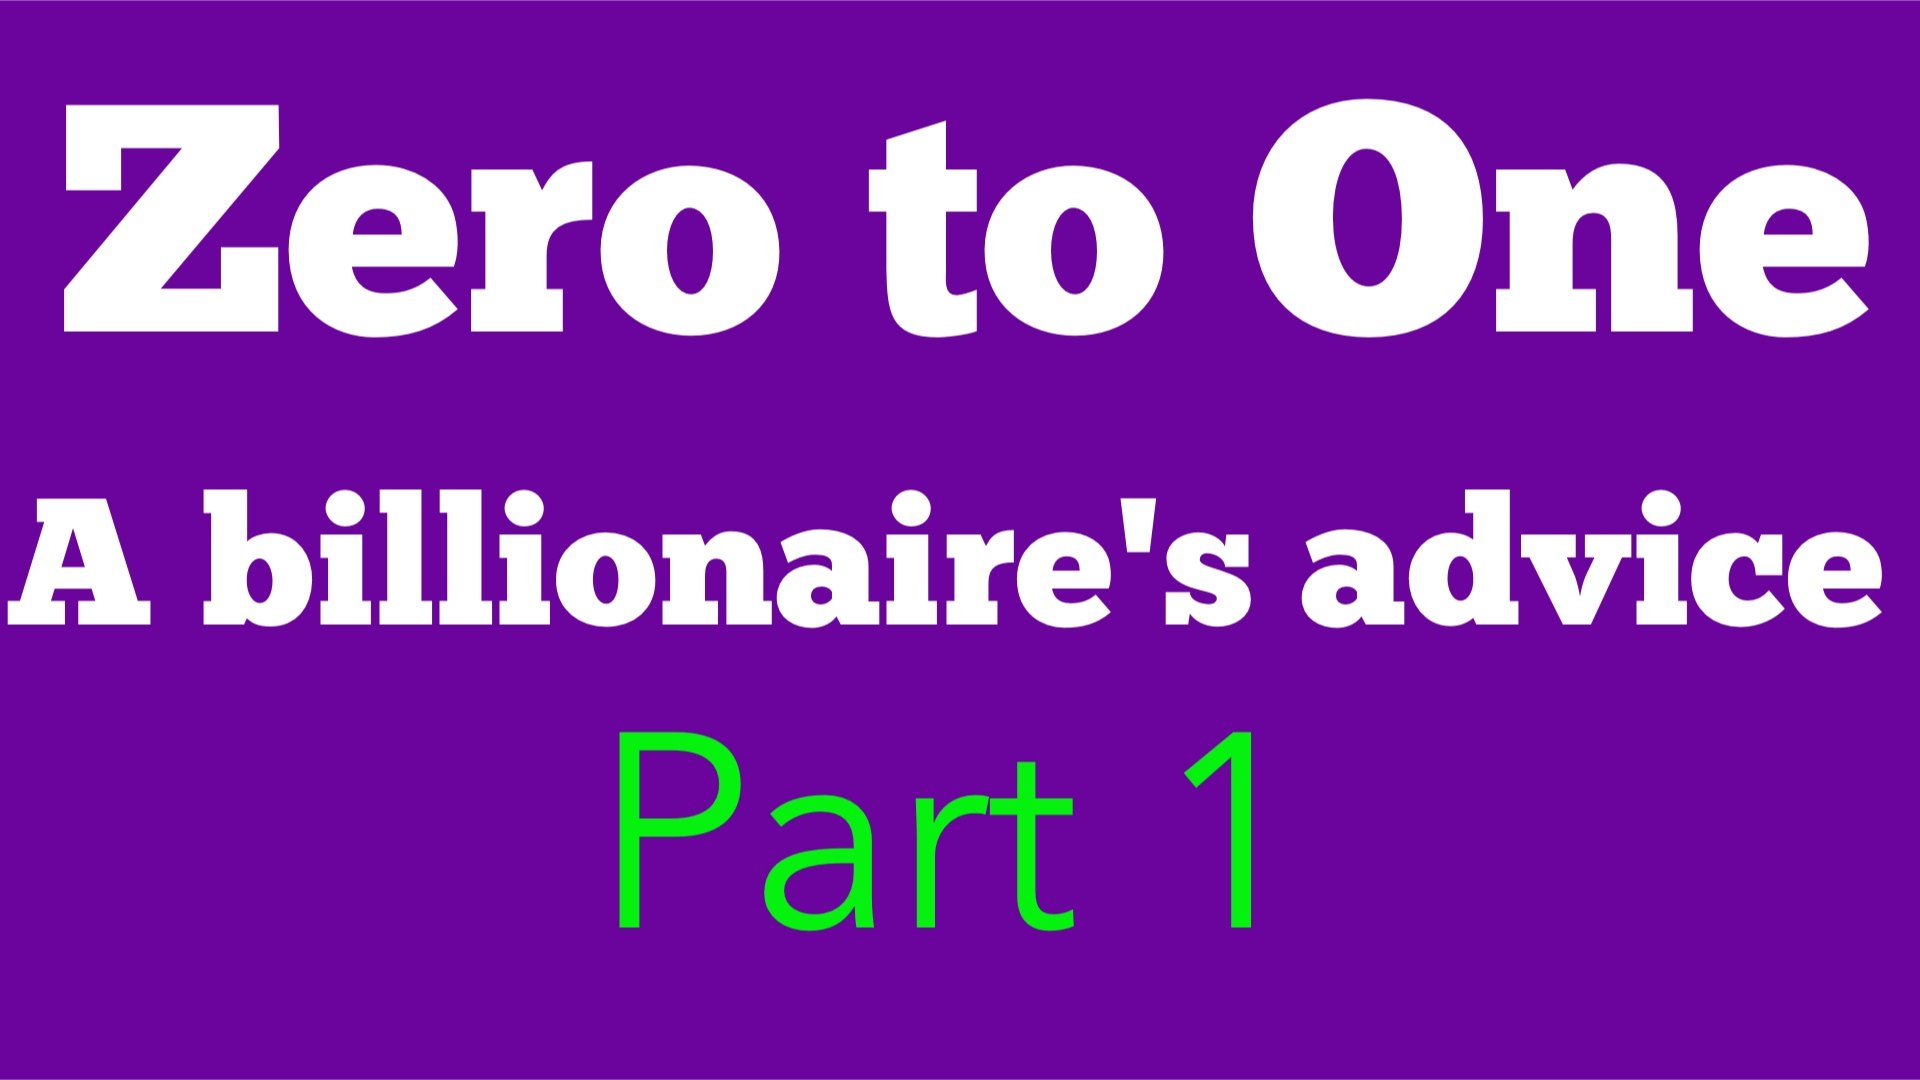 Speaker Notes on Zero To One By Billionaire Peter Thiel